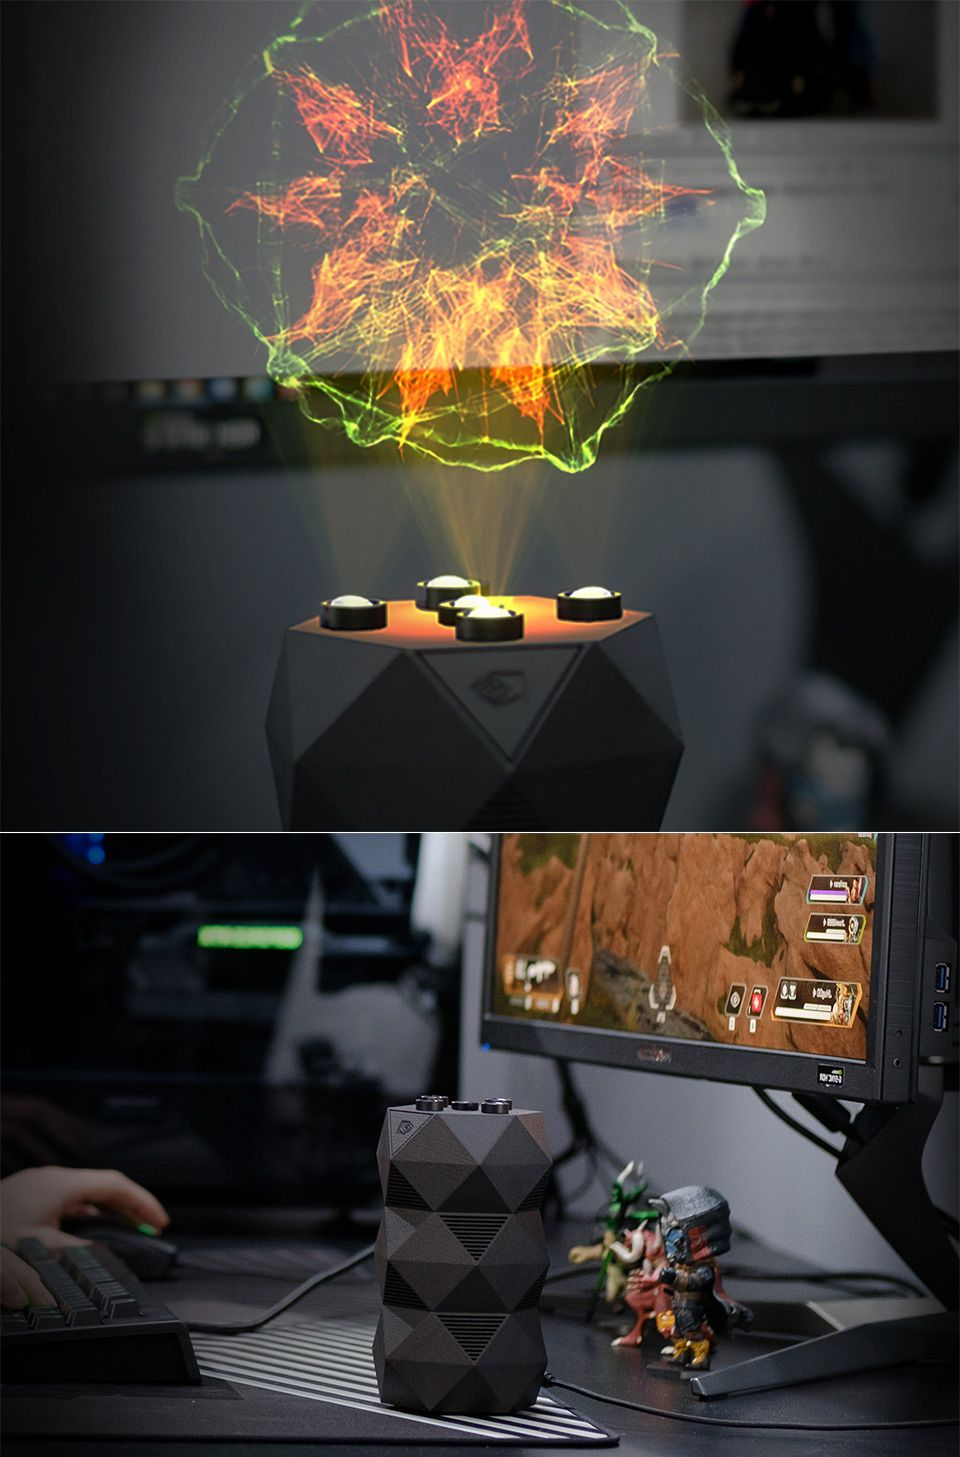 NVIDIA GeForce RTX R O N , the World's First AI Holographic Gaming